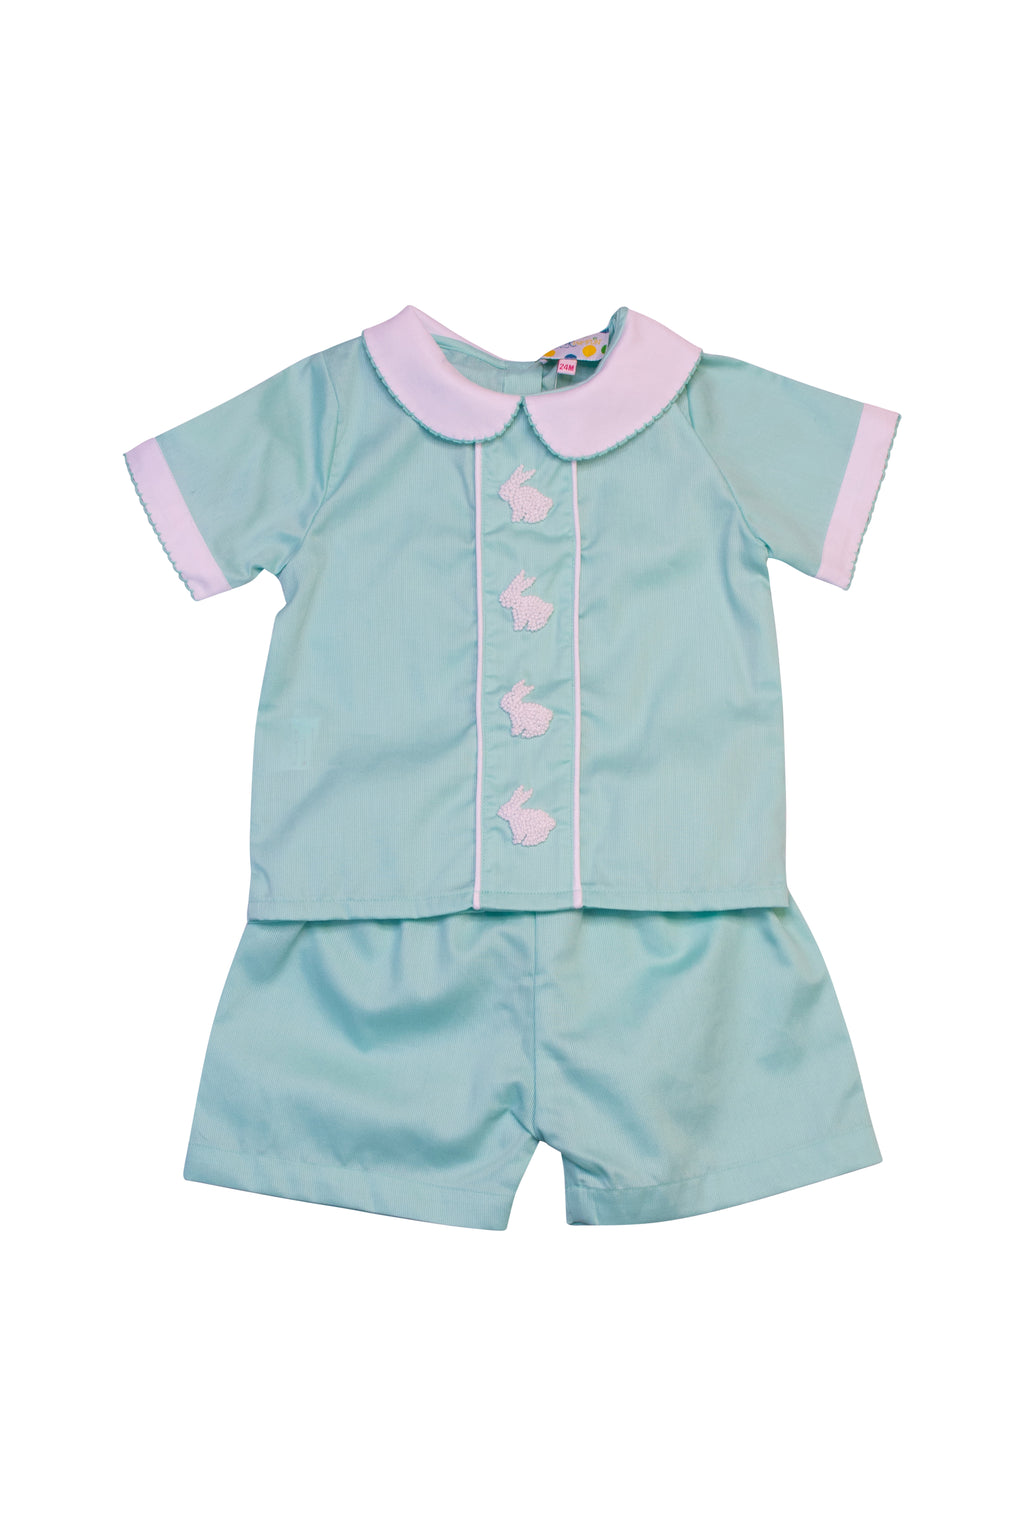 Boys Mint French Knot Bunny Shorts Set